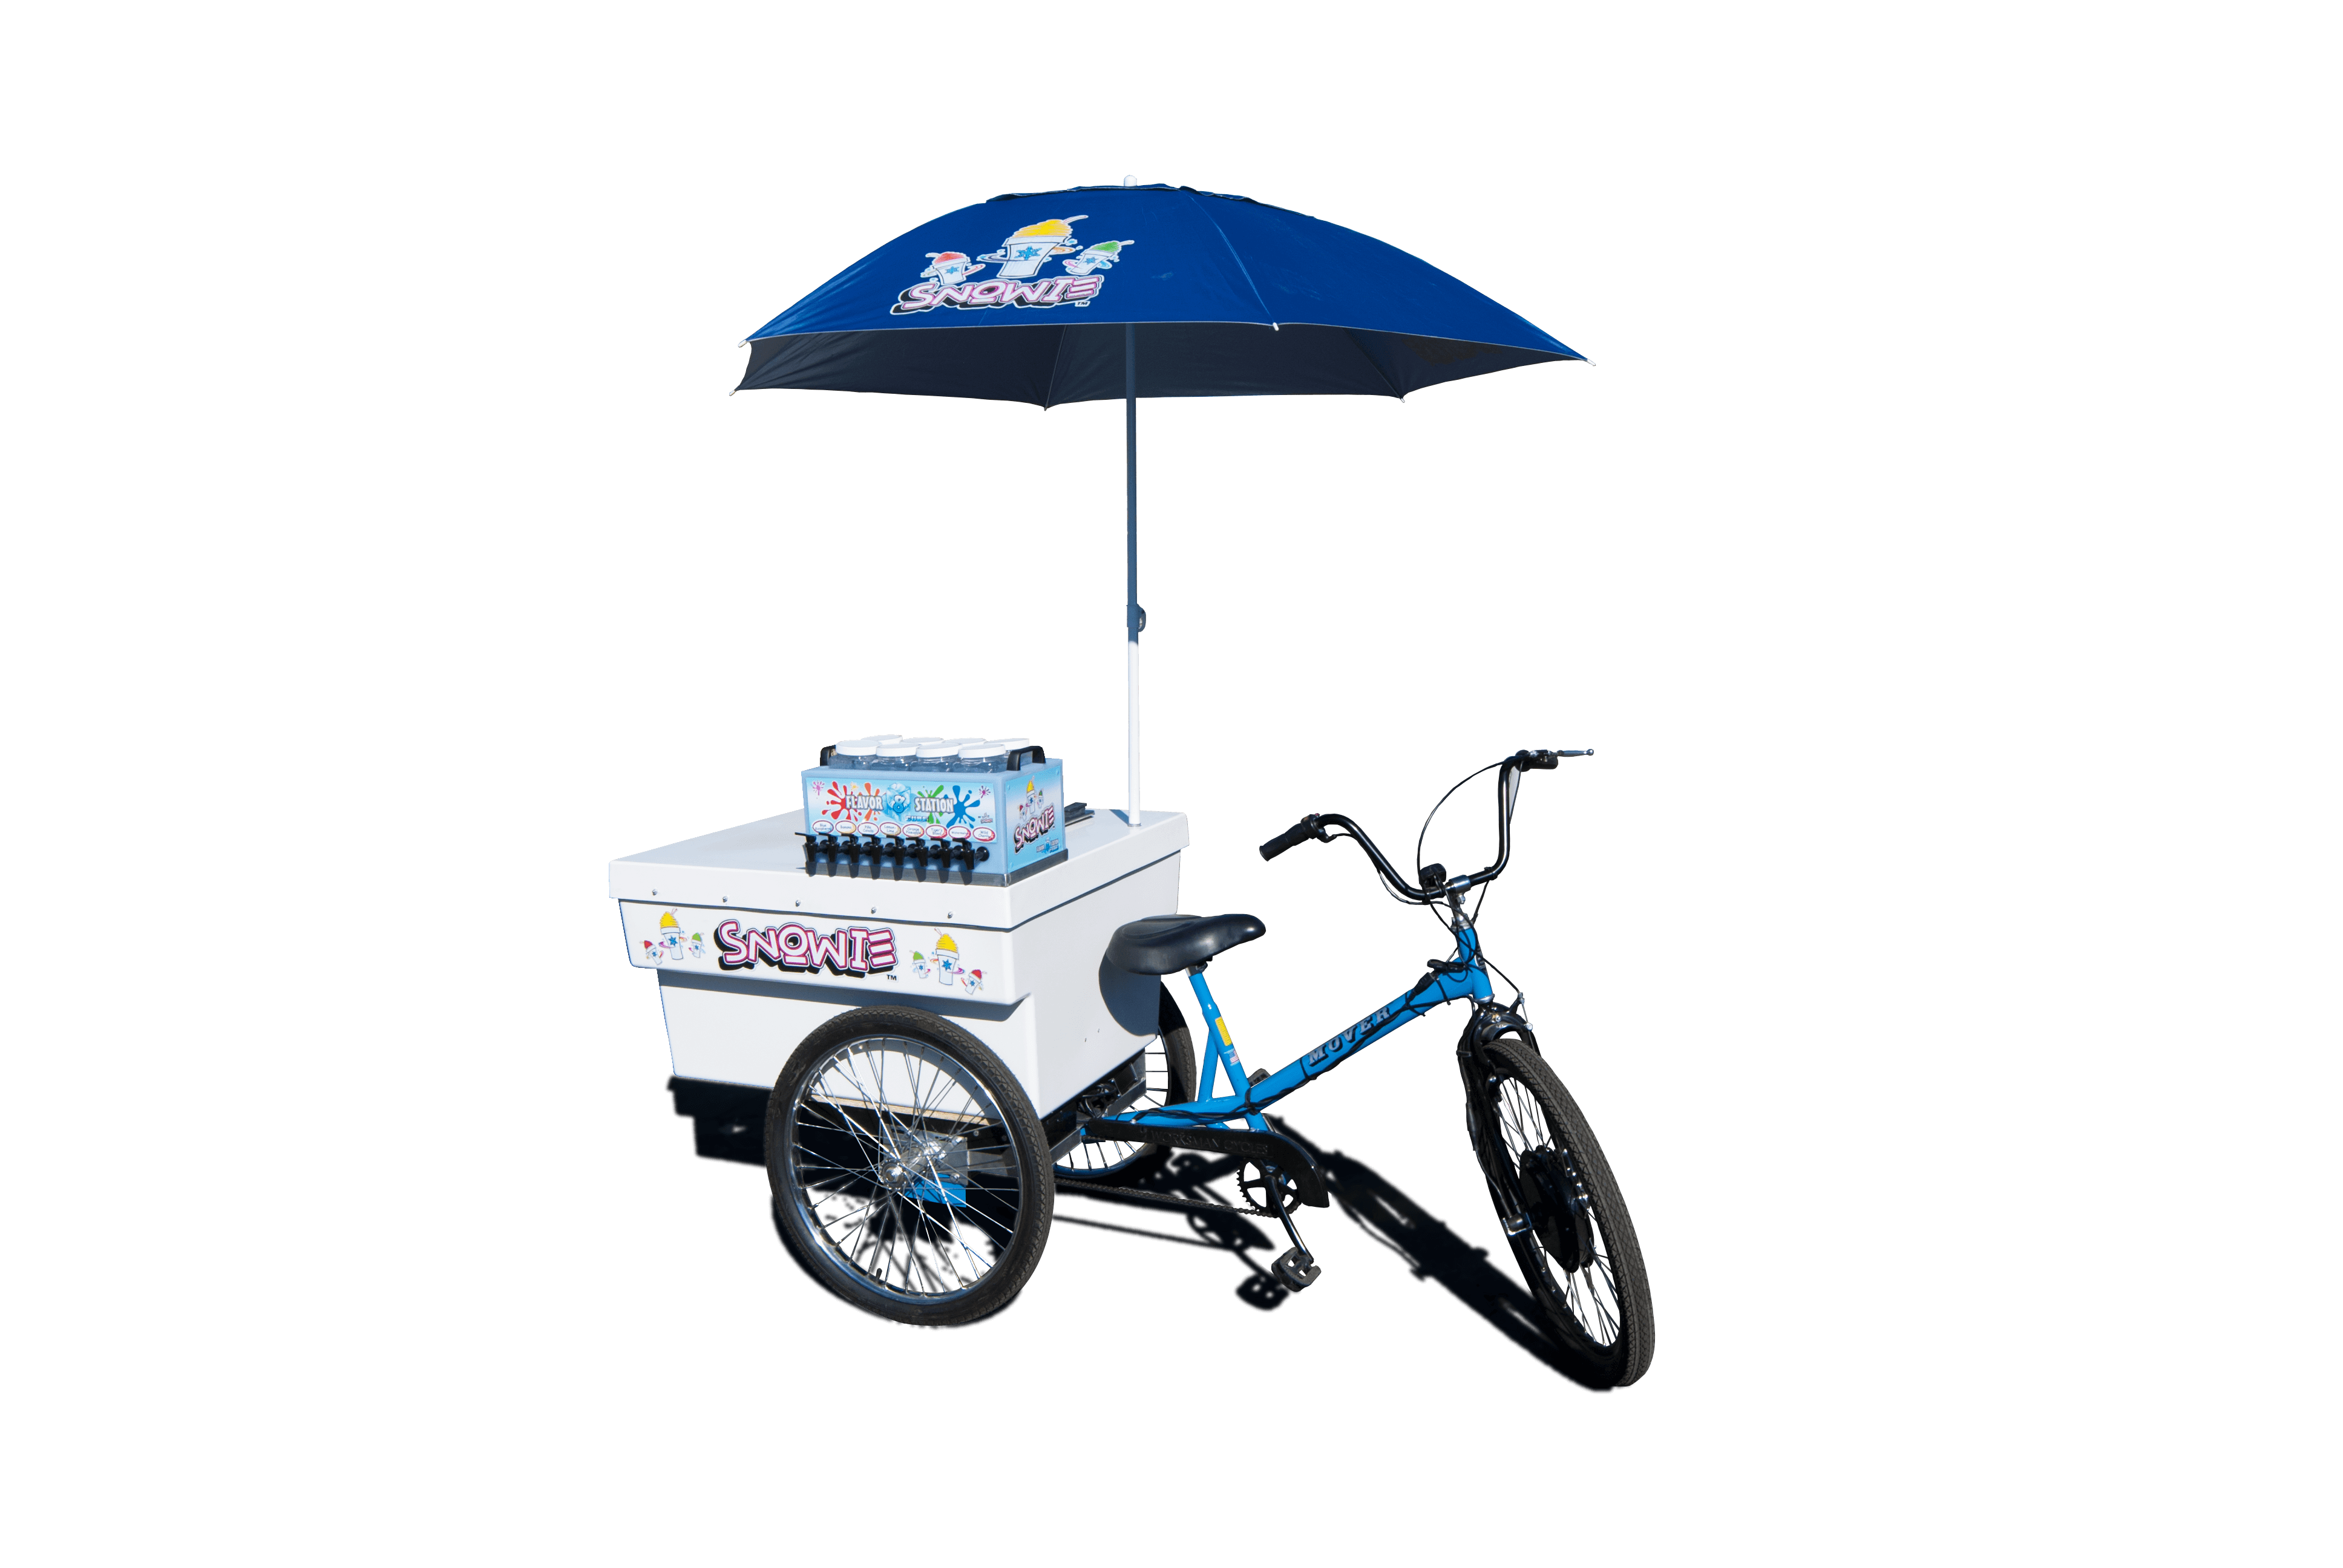 Trike, Tricycle, Bike, Shaved Ice Trike, Shaved Ice Bike, Shaved Ice Tricycle